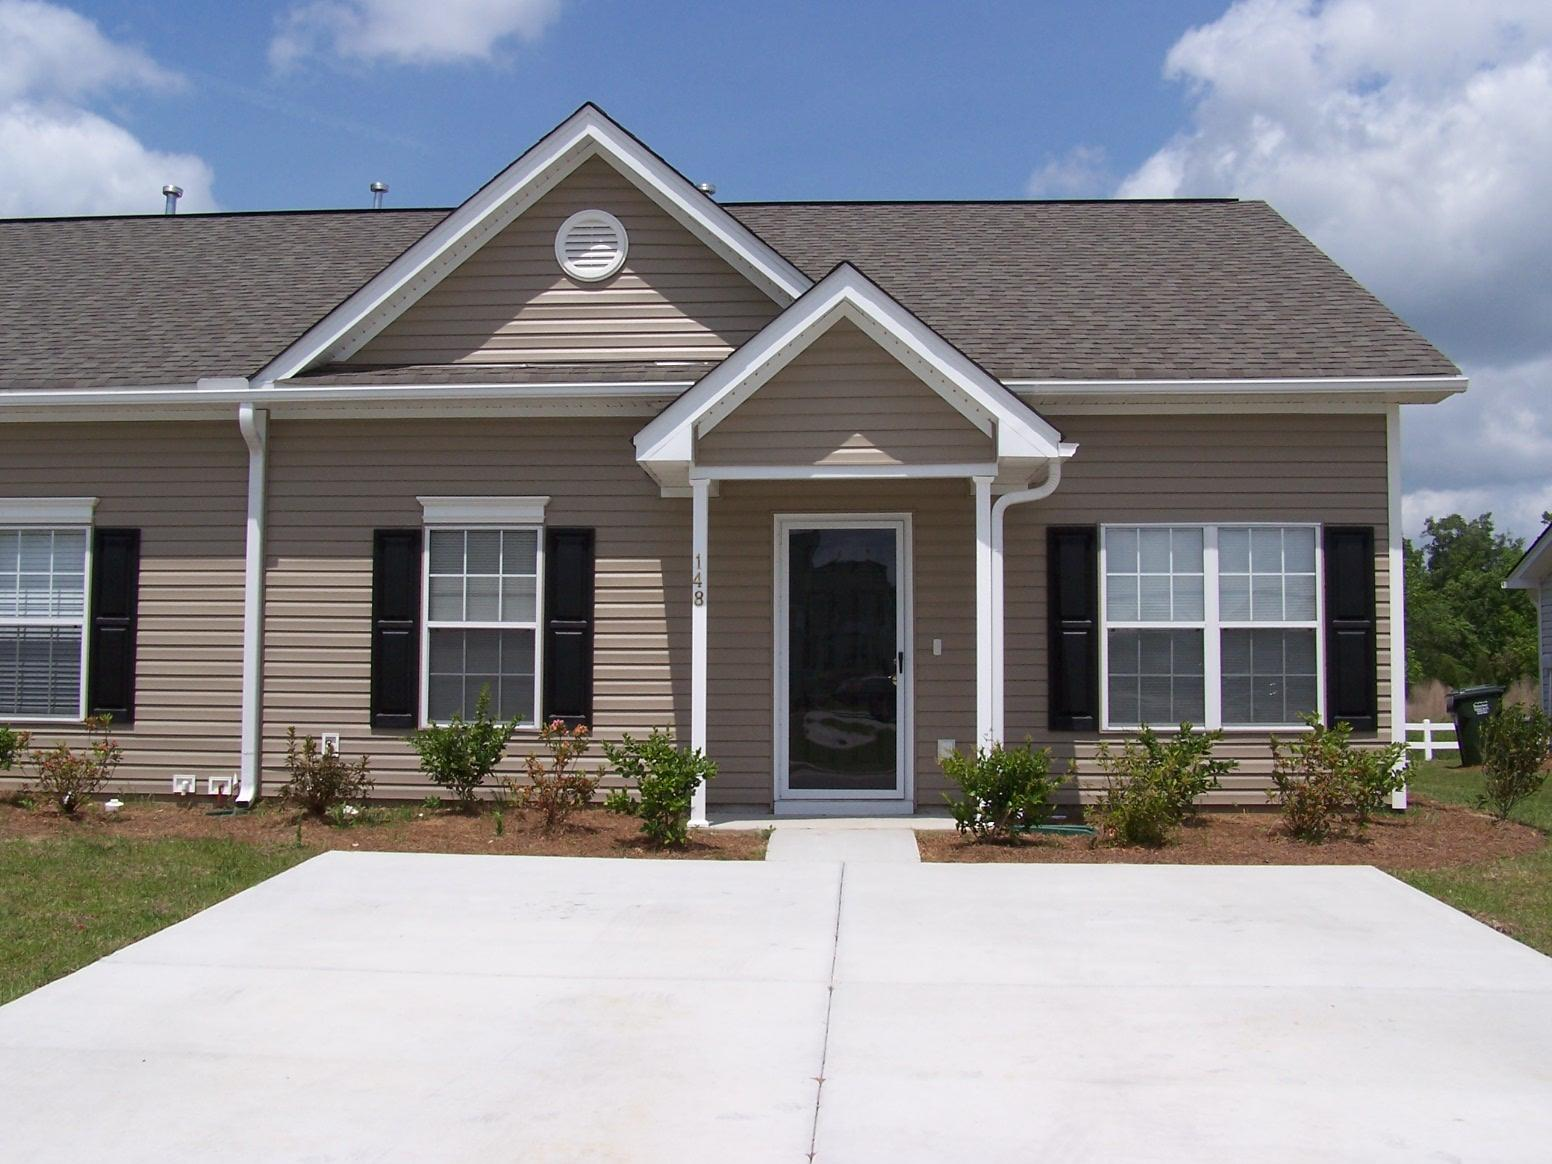 148 Townsend Way Summerville, SC 29483